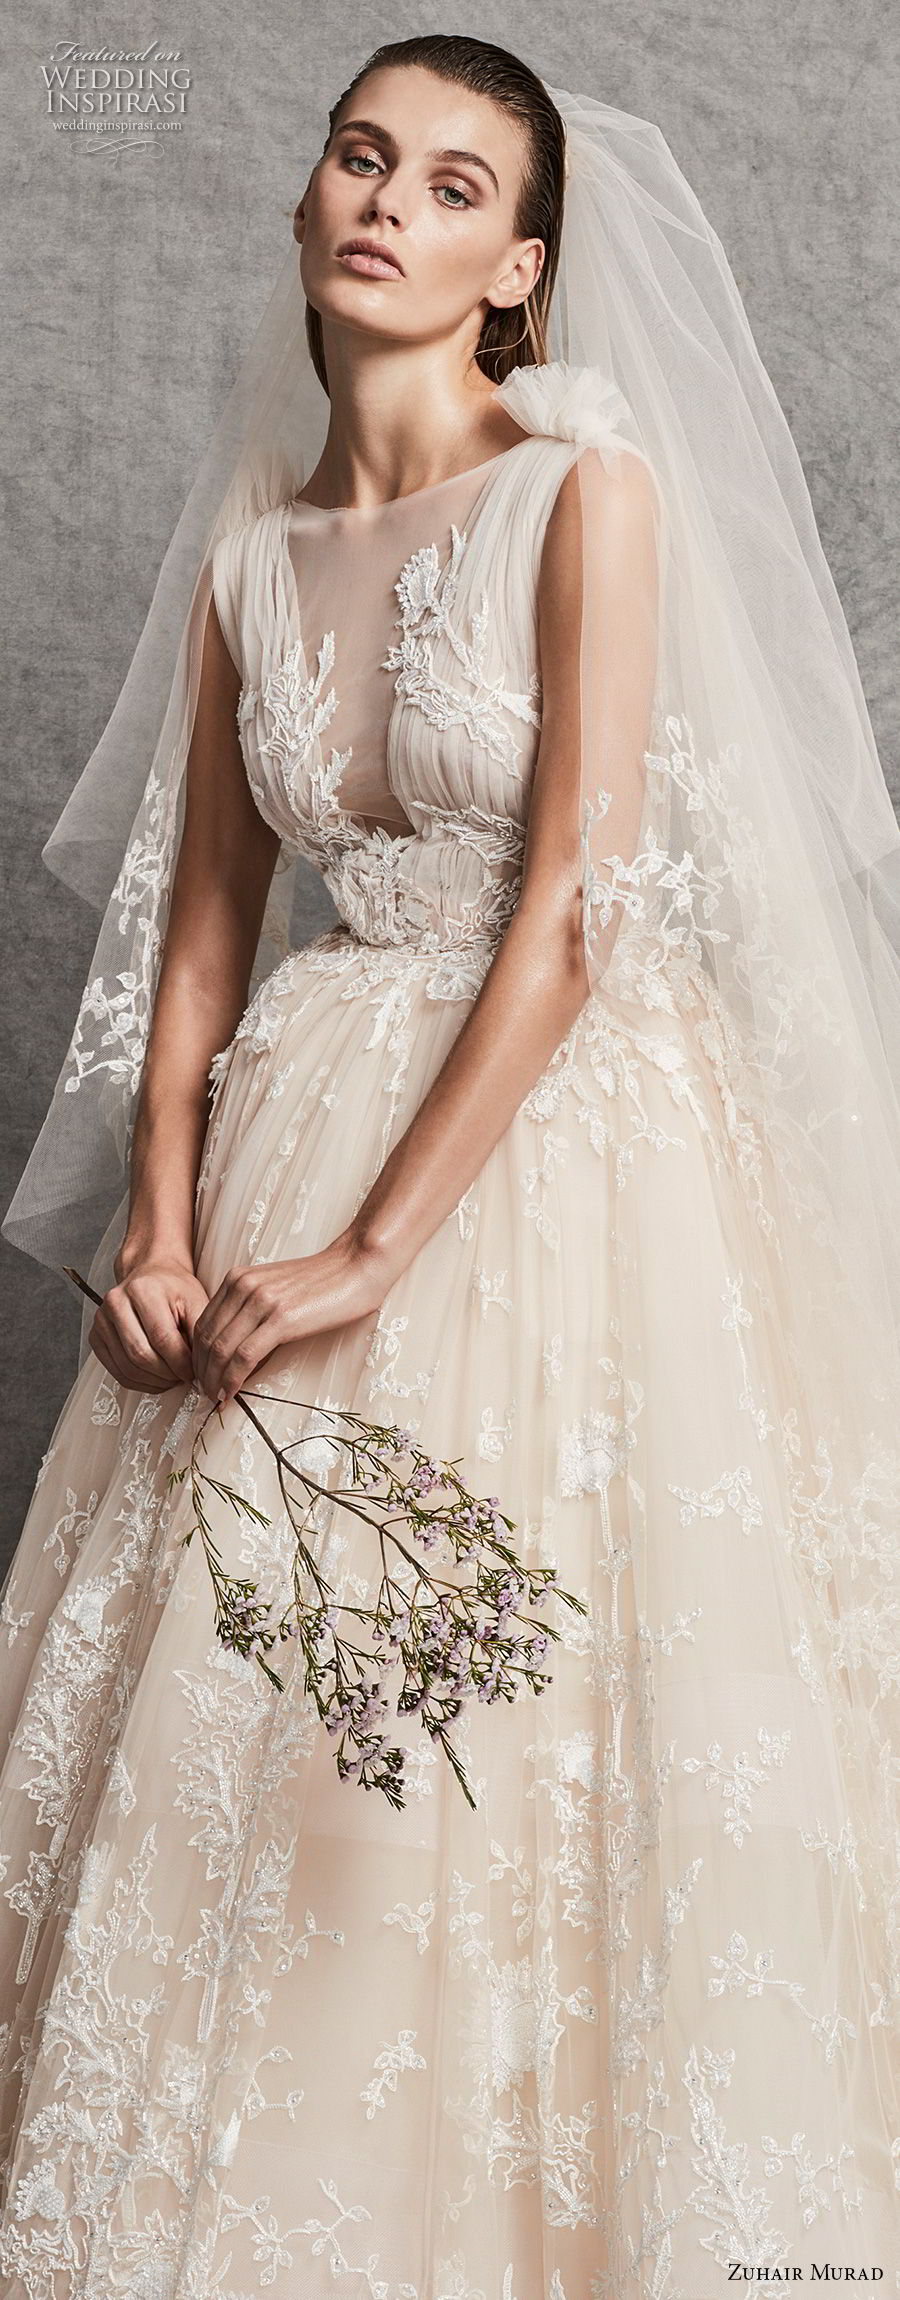 zuhair murad fall 2018 bridal sleeveless illusion bateau v meck full embellishment romantic ivory ball gown wedding dress chapel train (14) zv